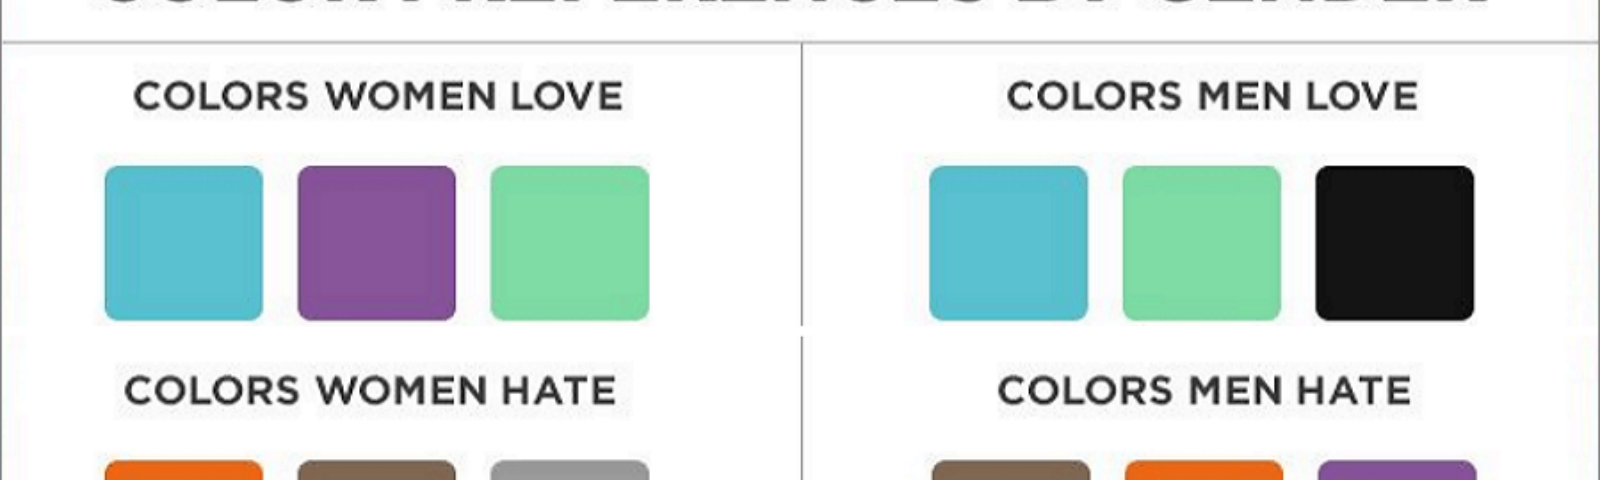 How To Use Color In UI Design Wisely to Create A Perfect UI